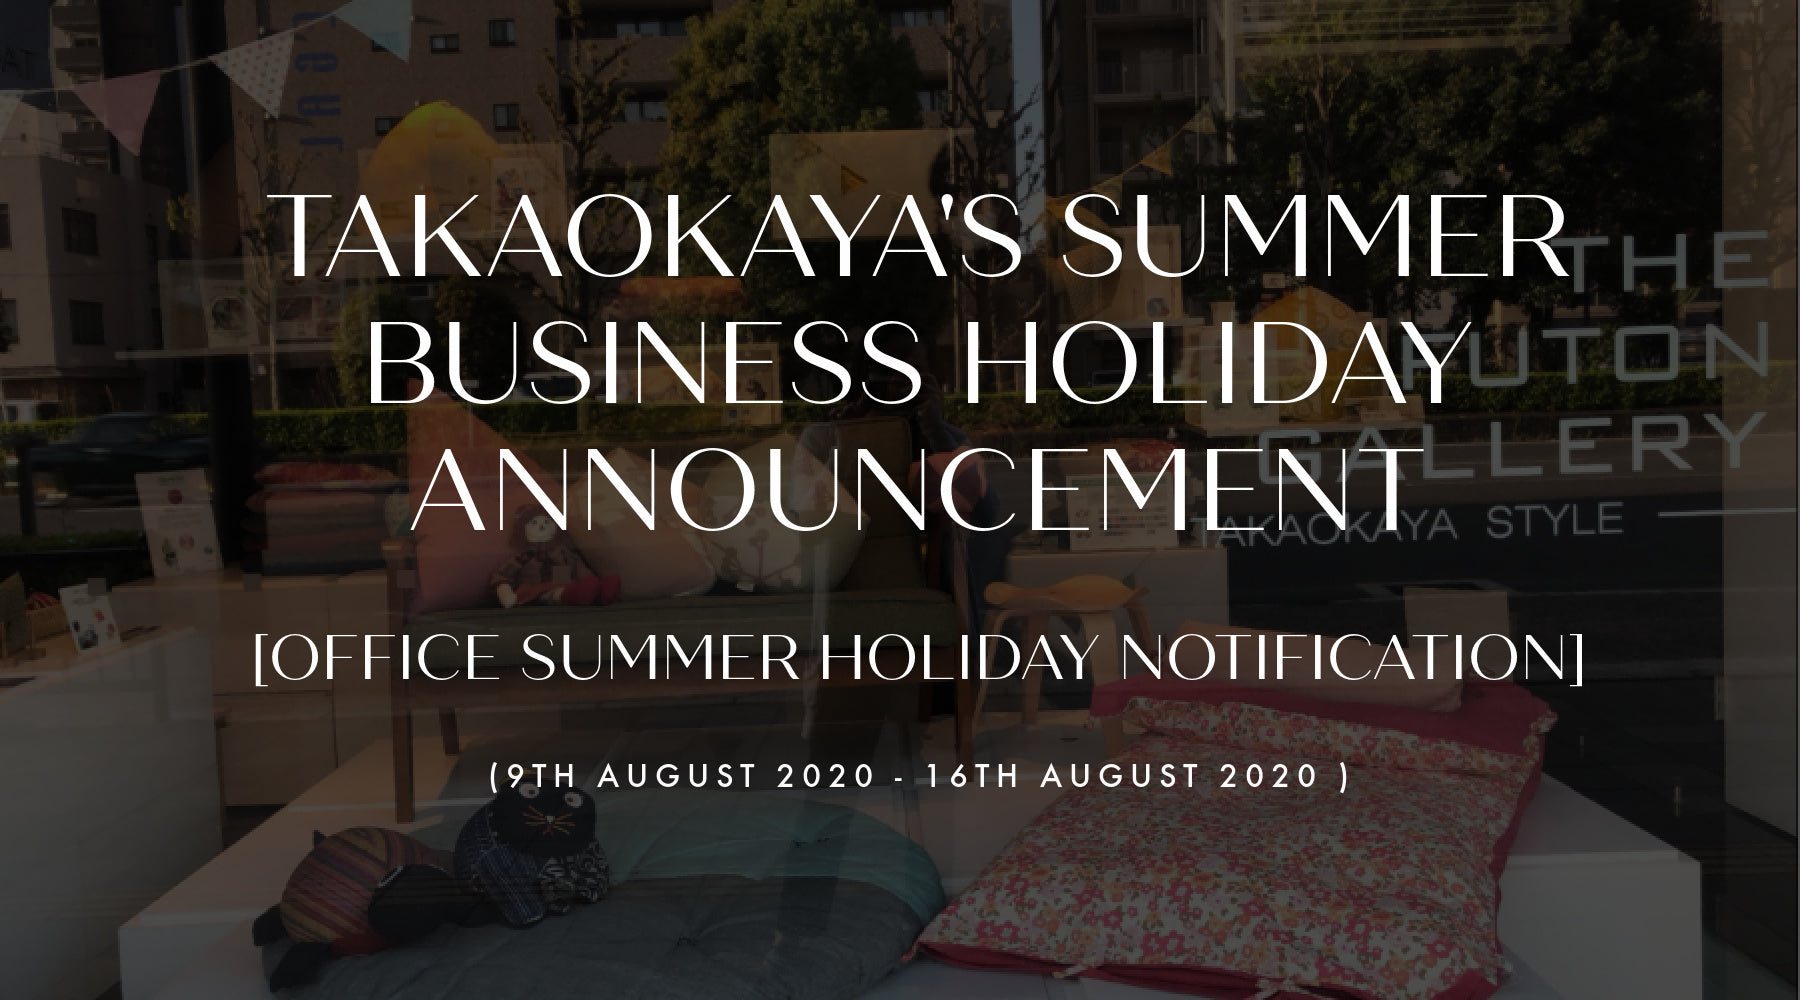 Takaokaya's Summer Business Holiday Announcement